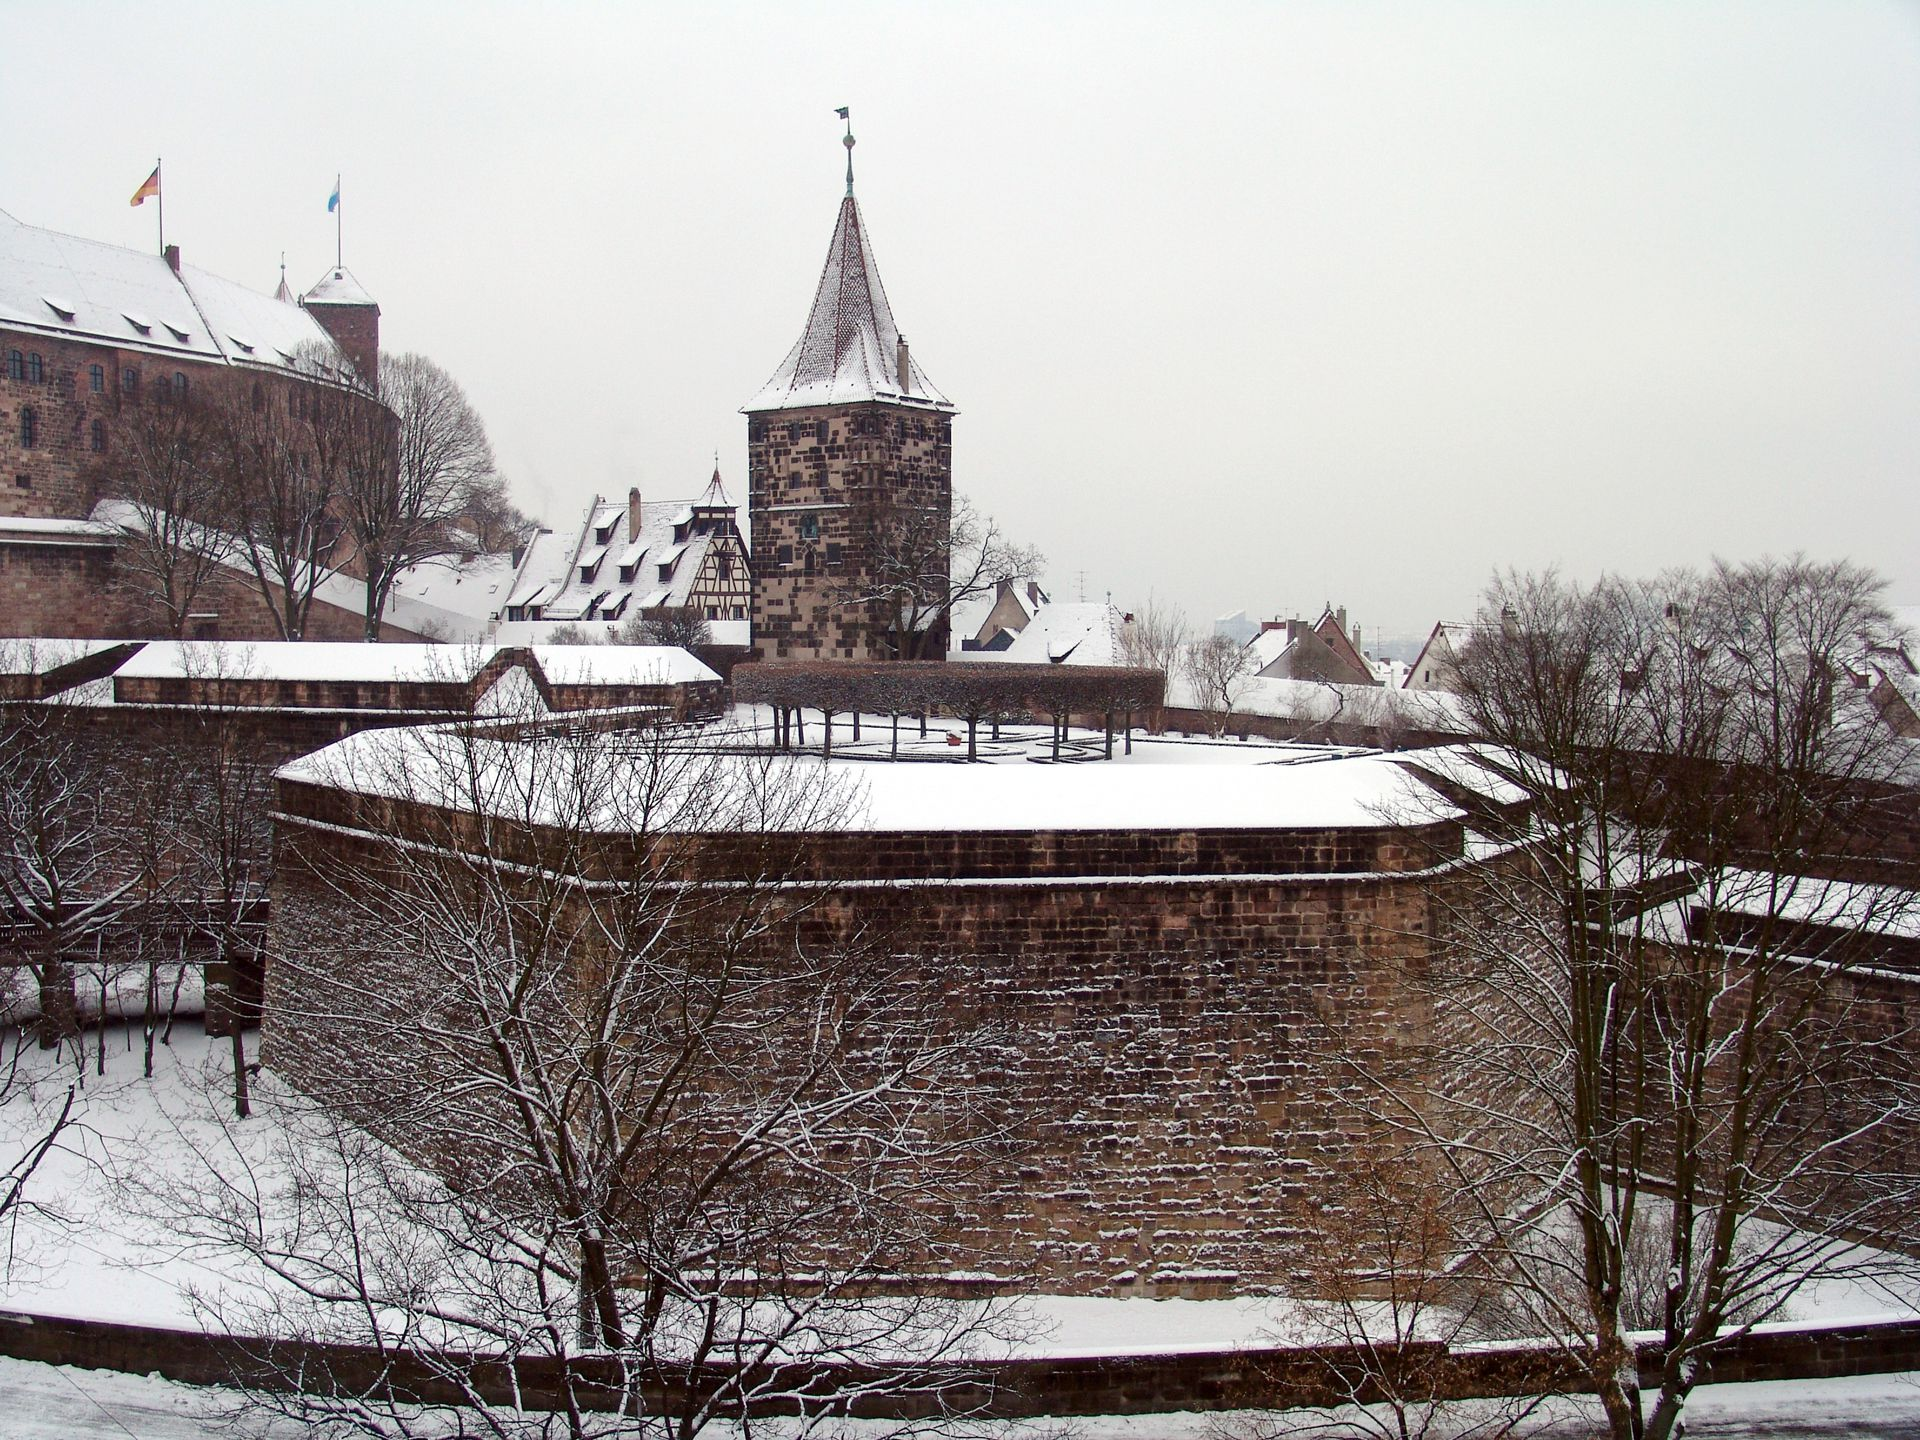 City Fortification Tiergärtnertor bastion